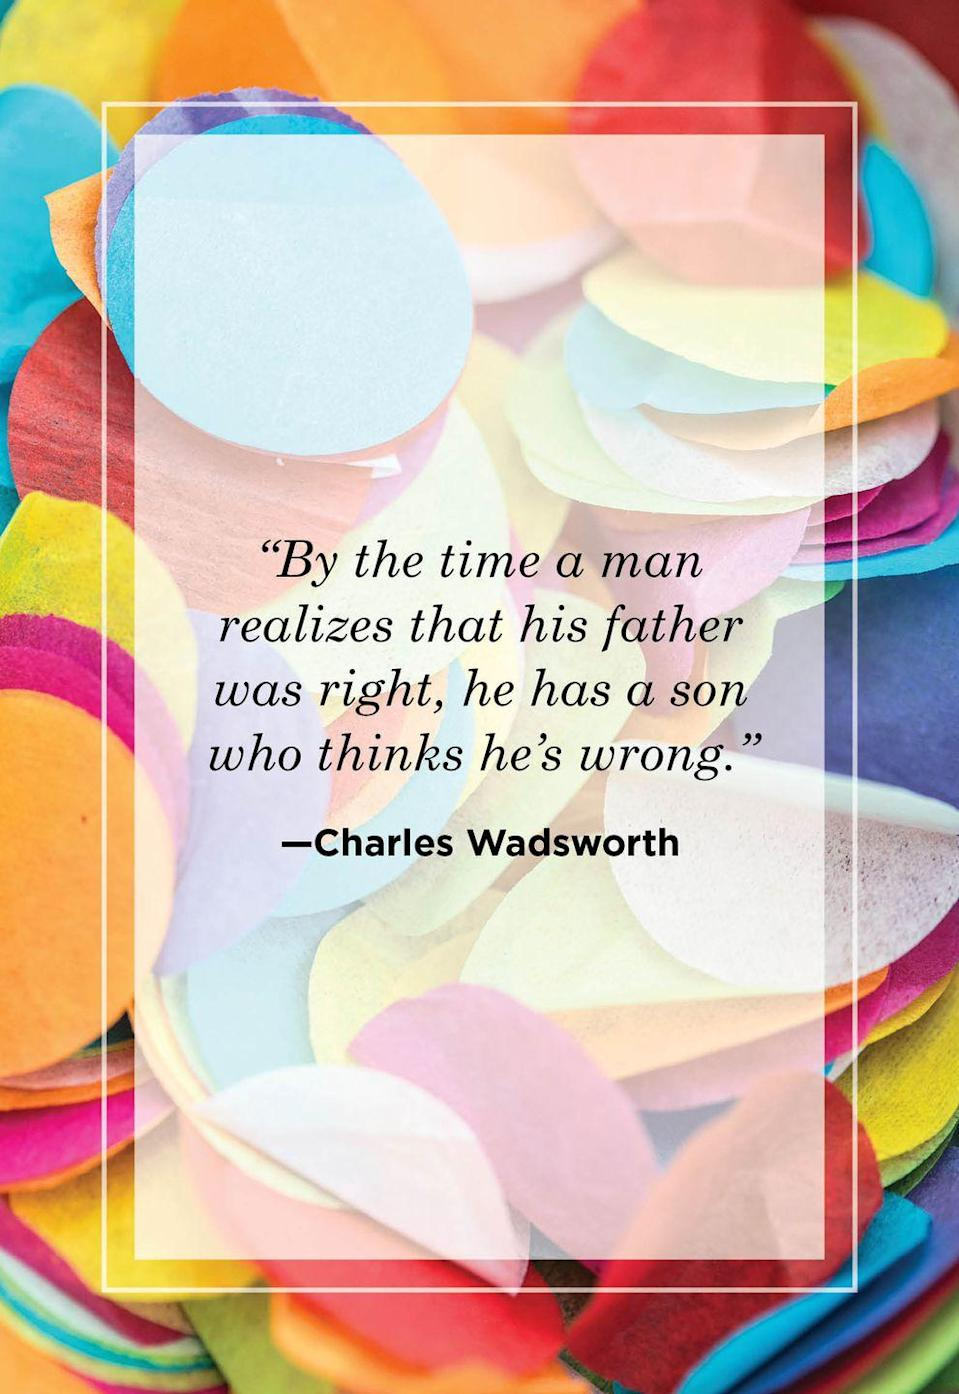 """<p>""""By the time a man realizes that his father was right, he has a son who thinks he's wrong.""""</p>"""